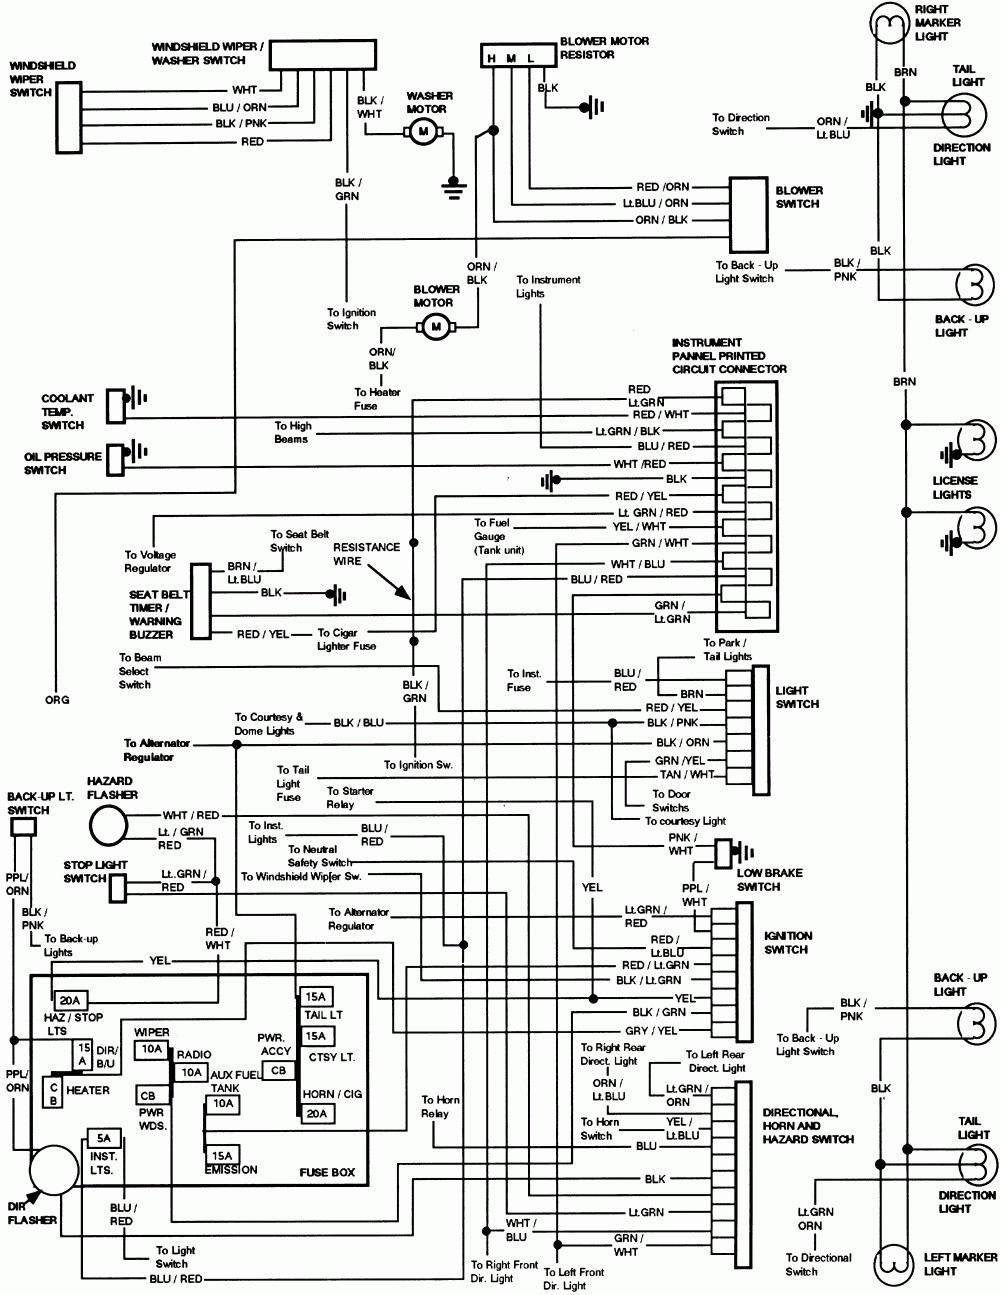 hight resolution of 1985 ford e150 wiring diagram wiring diagram blog 1984 e150 wiring diagram wiring diagrams konsult 1985